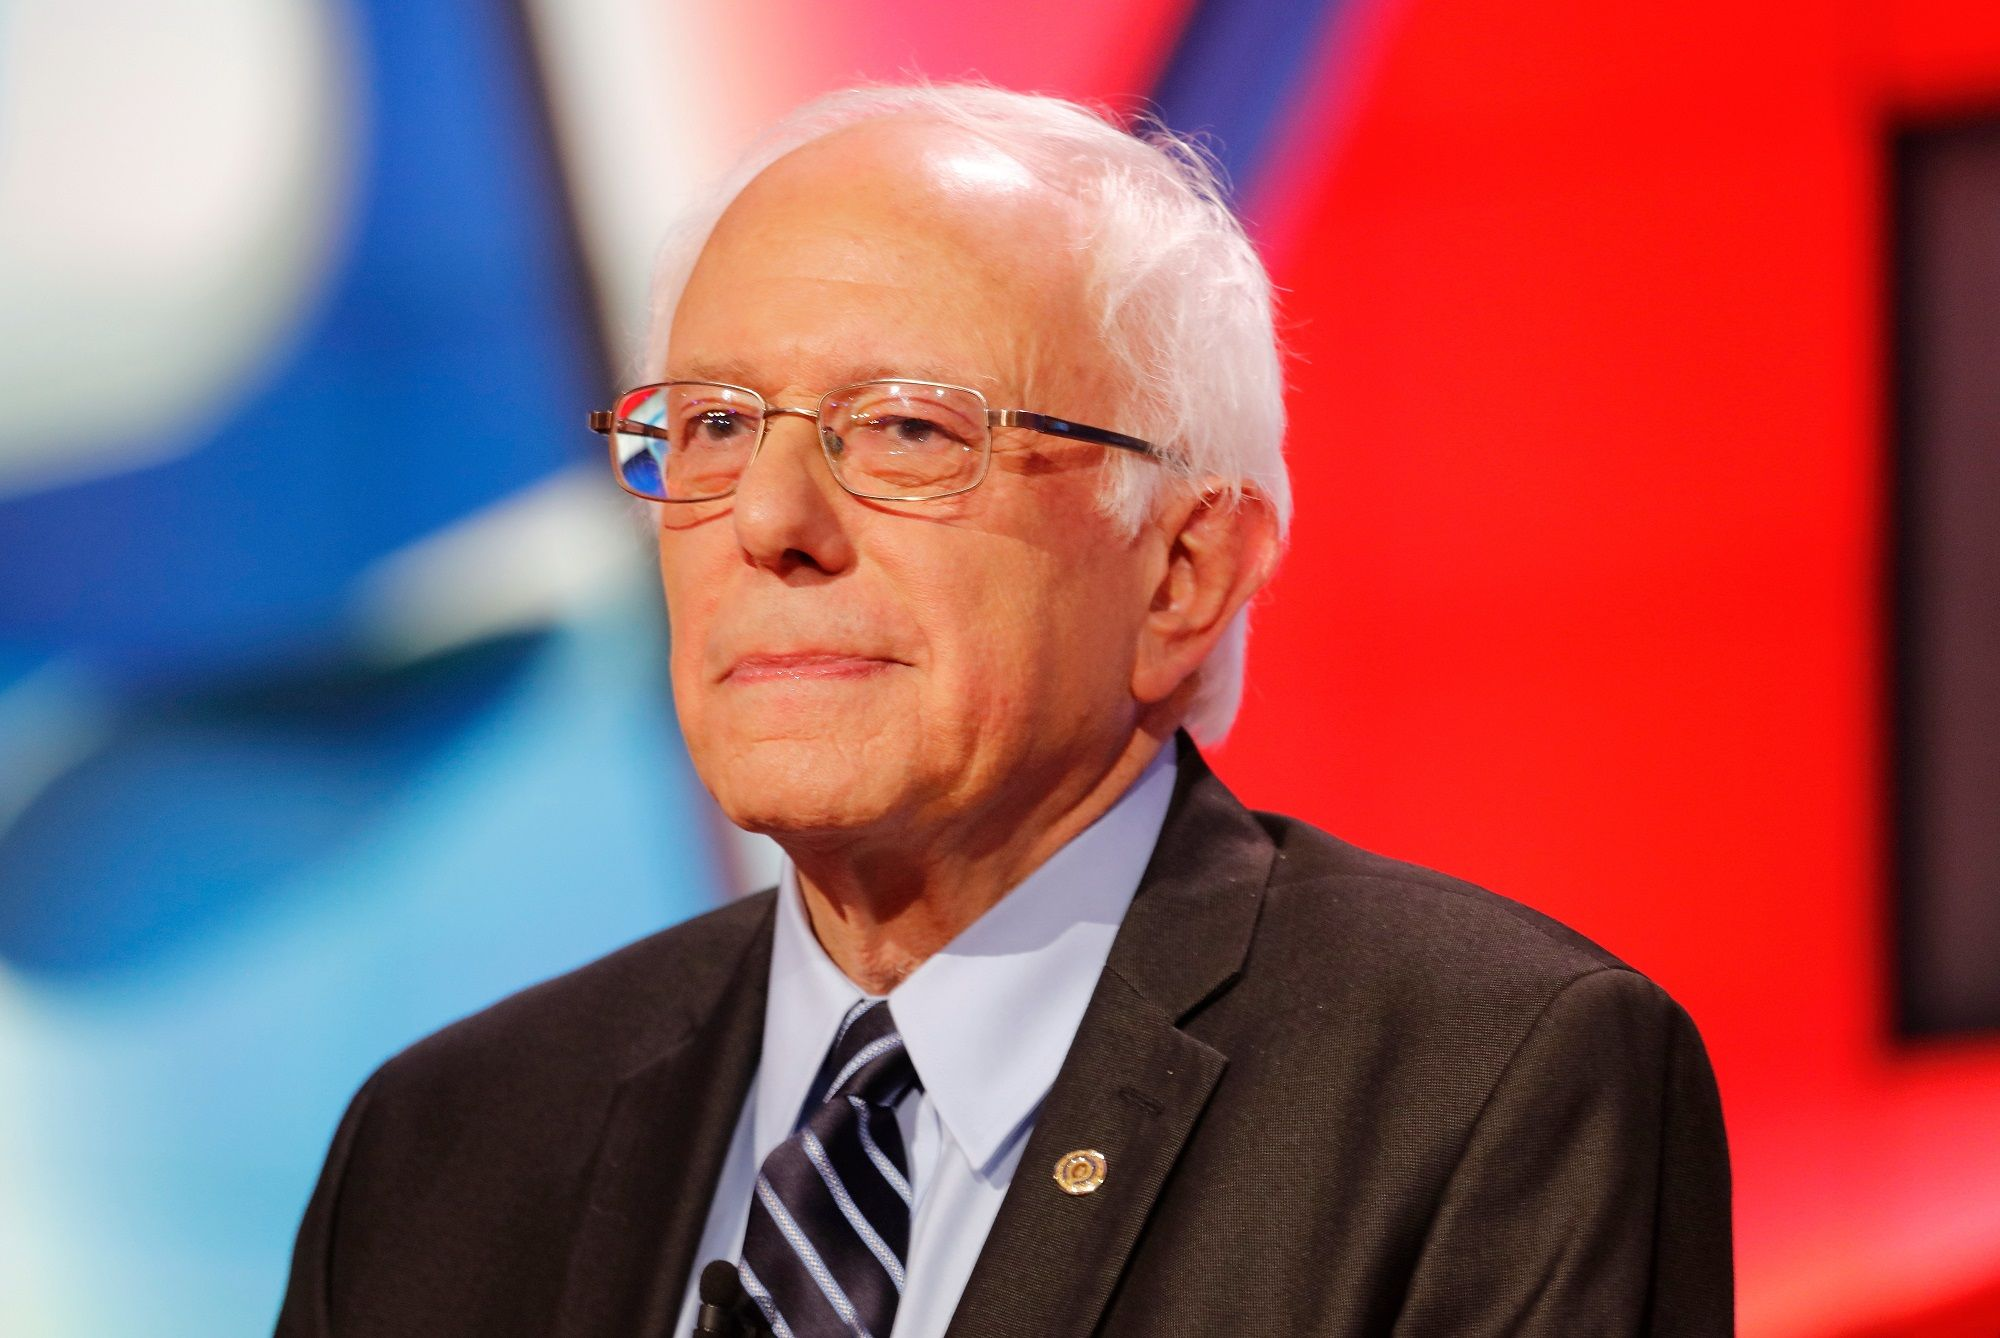 10 Reasons Bernie Sanders Just Might Be The Next American President